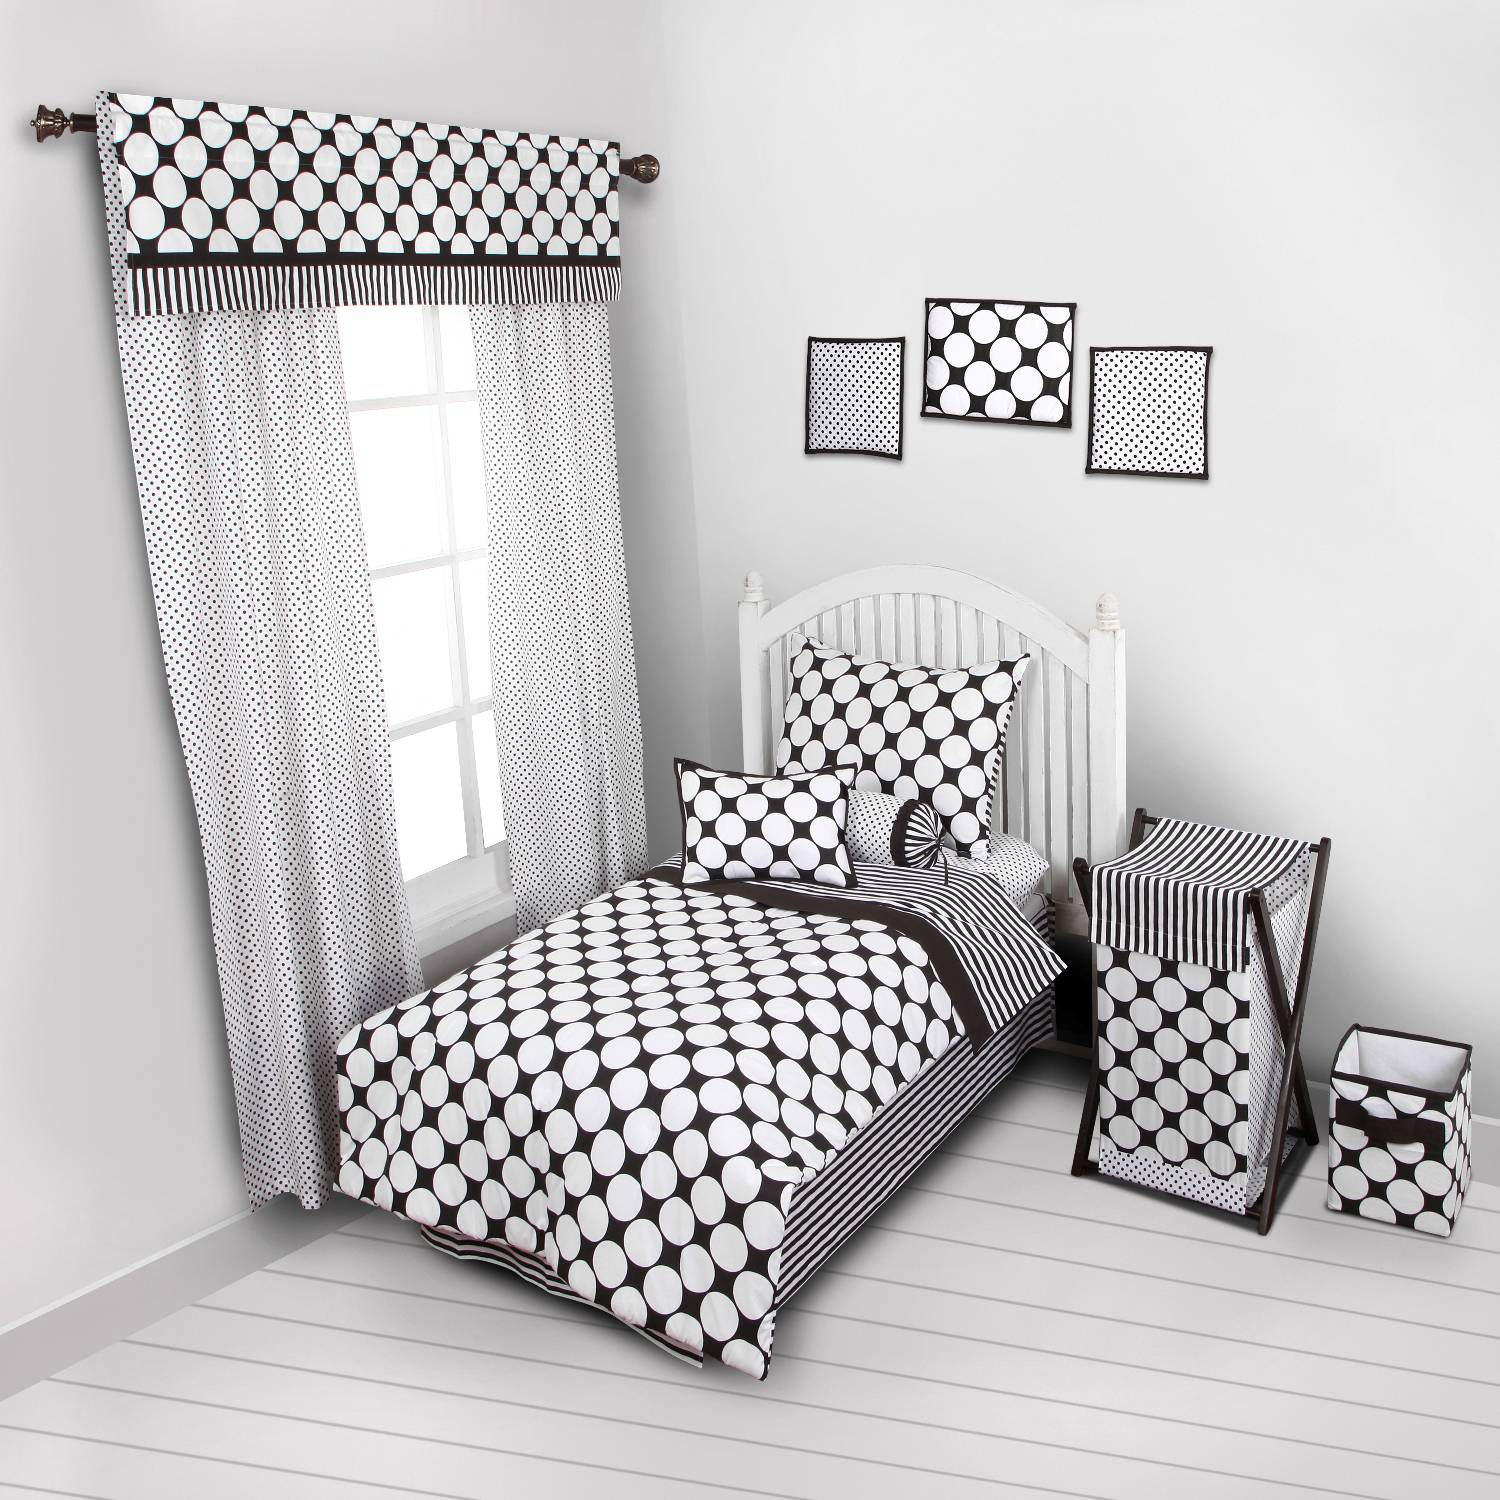 Bacati - Dots/Pin Stripes 4-Piece Toddler Bedding set 100% Cotton percale,  Black/White